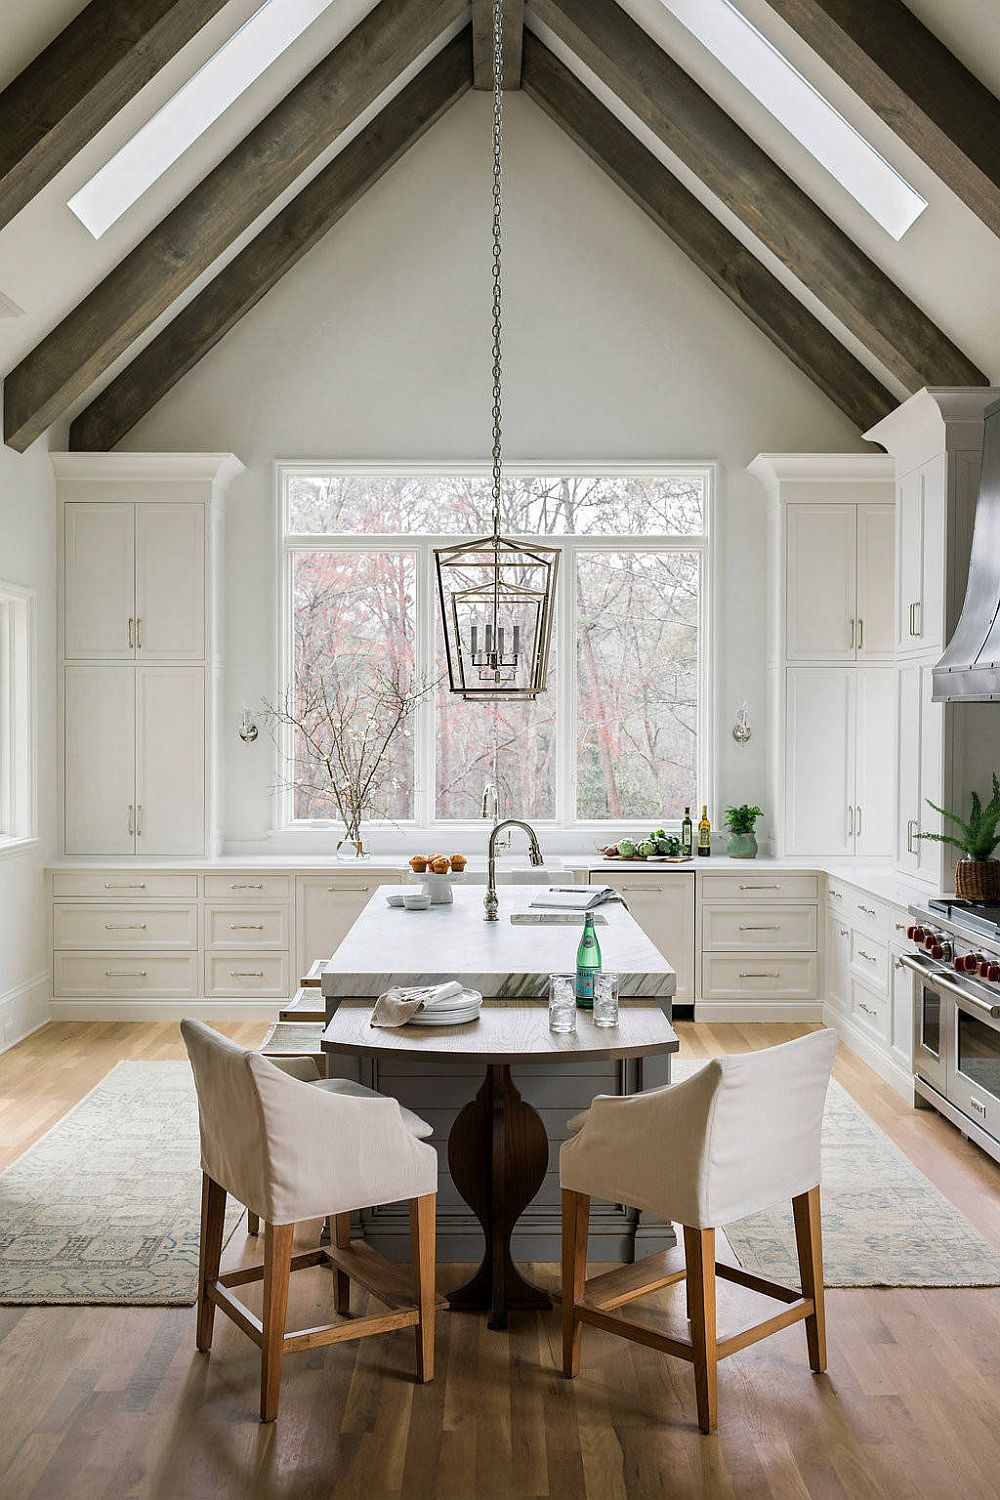 Rustic-kitchen-with-vaulted-ceiling-and-smart-wooden-beams-50090